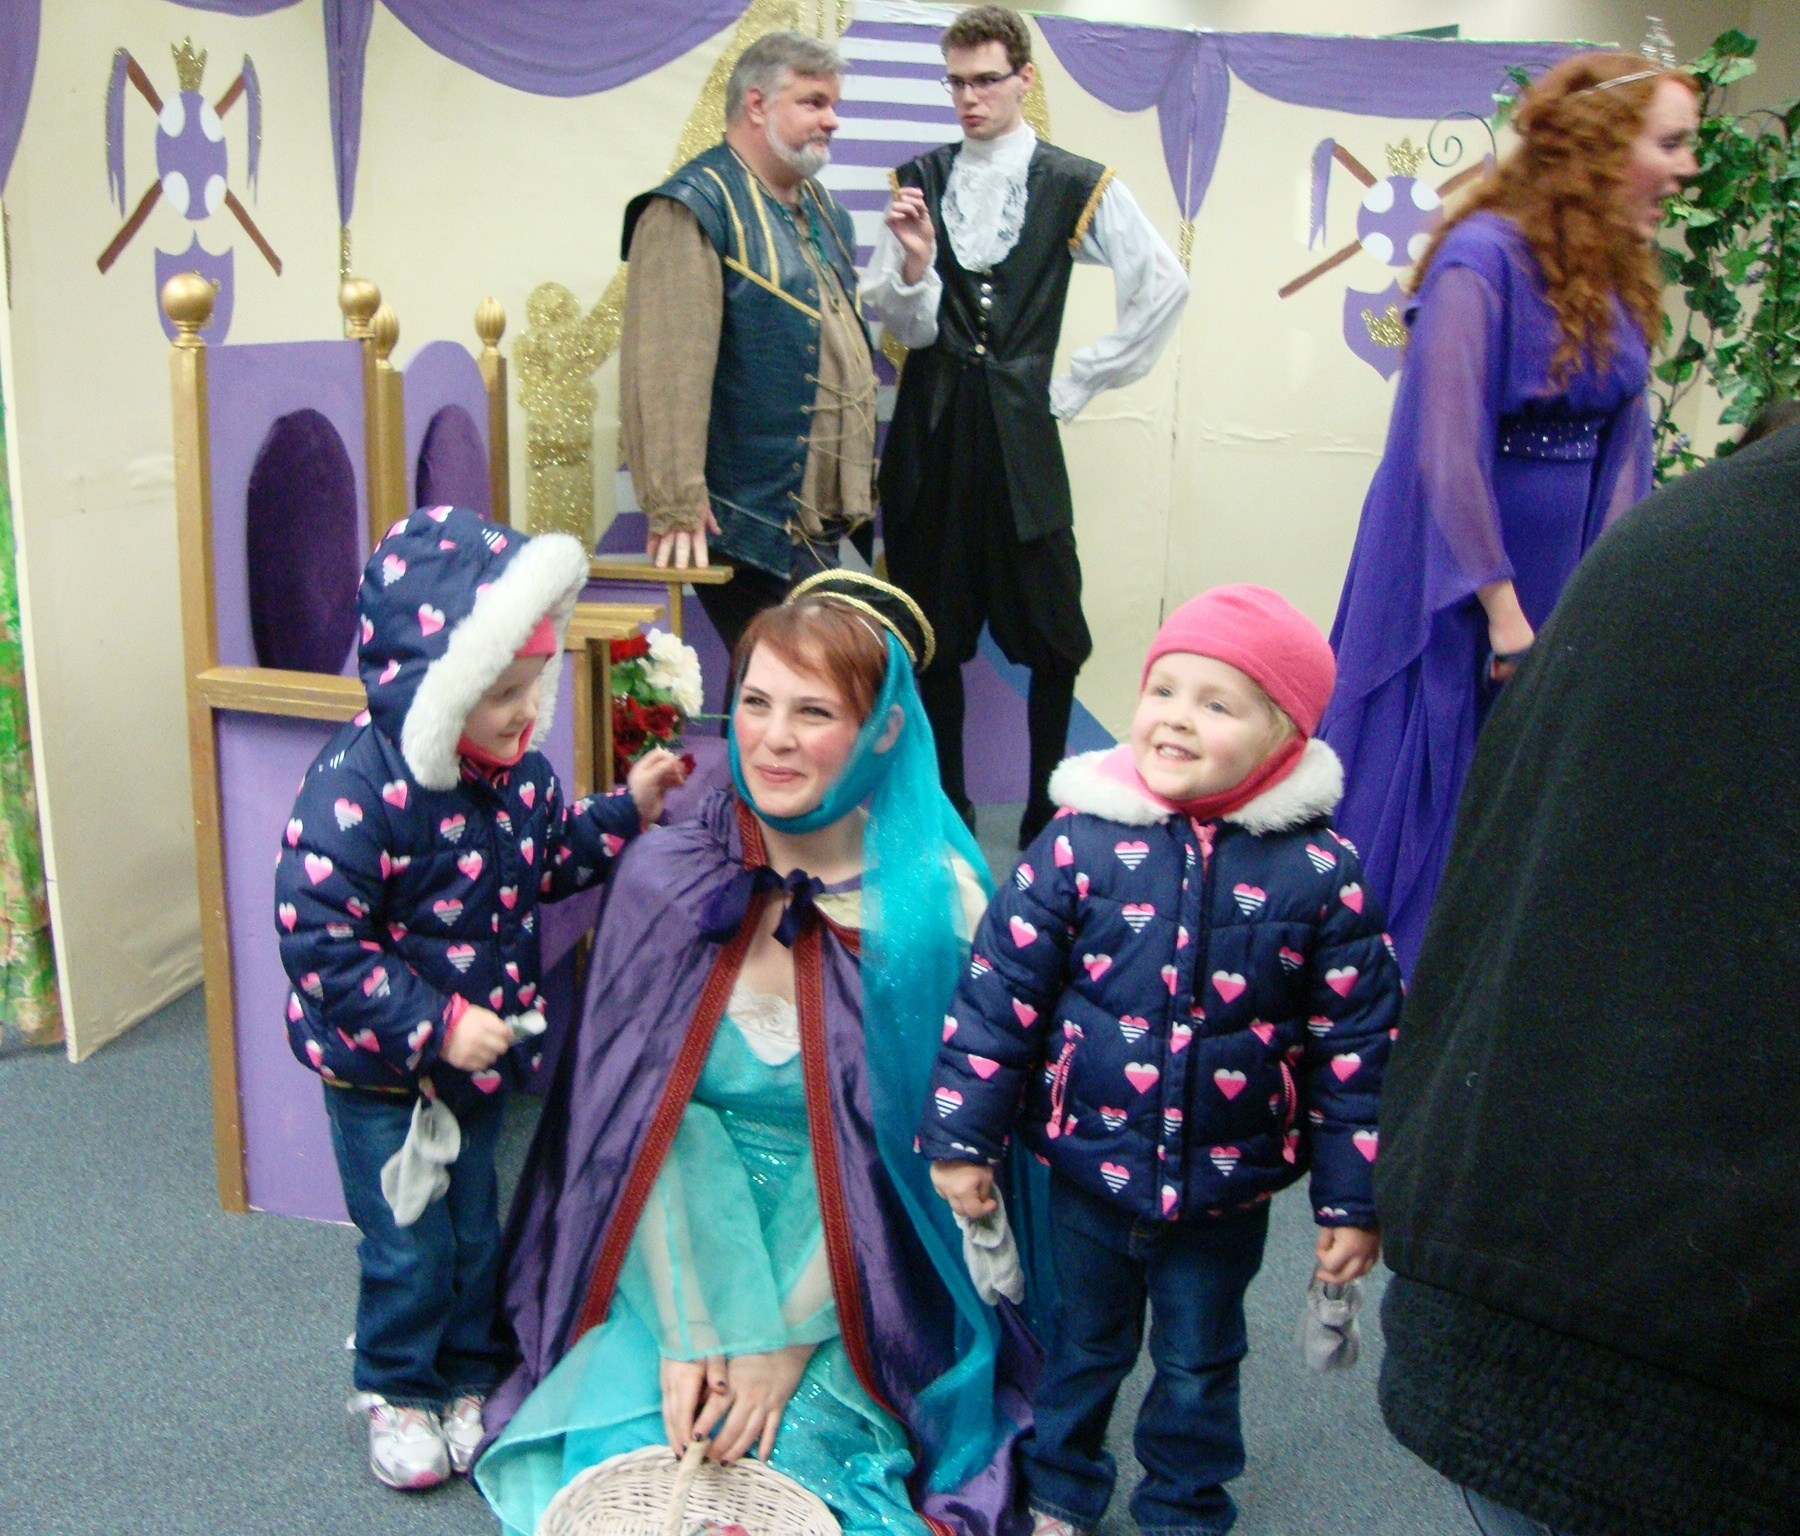 cded32473e270a5085d0_Trilogy_Princess_with_young_fans.JPG